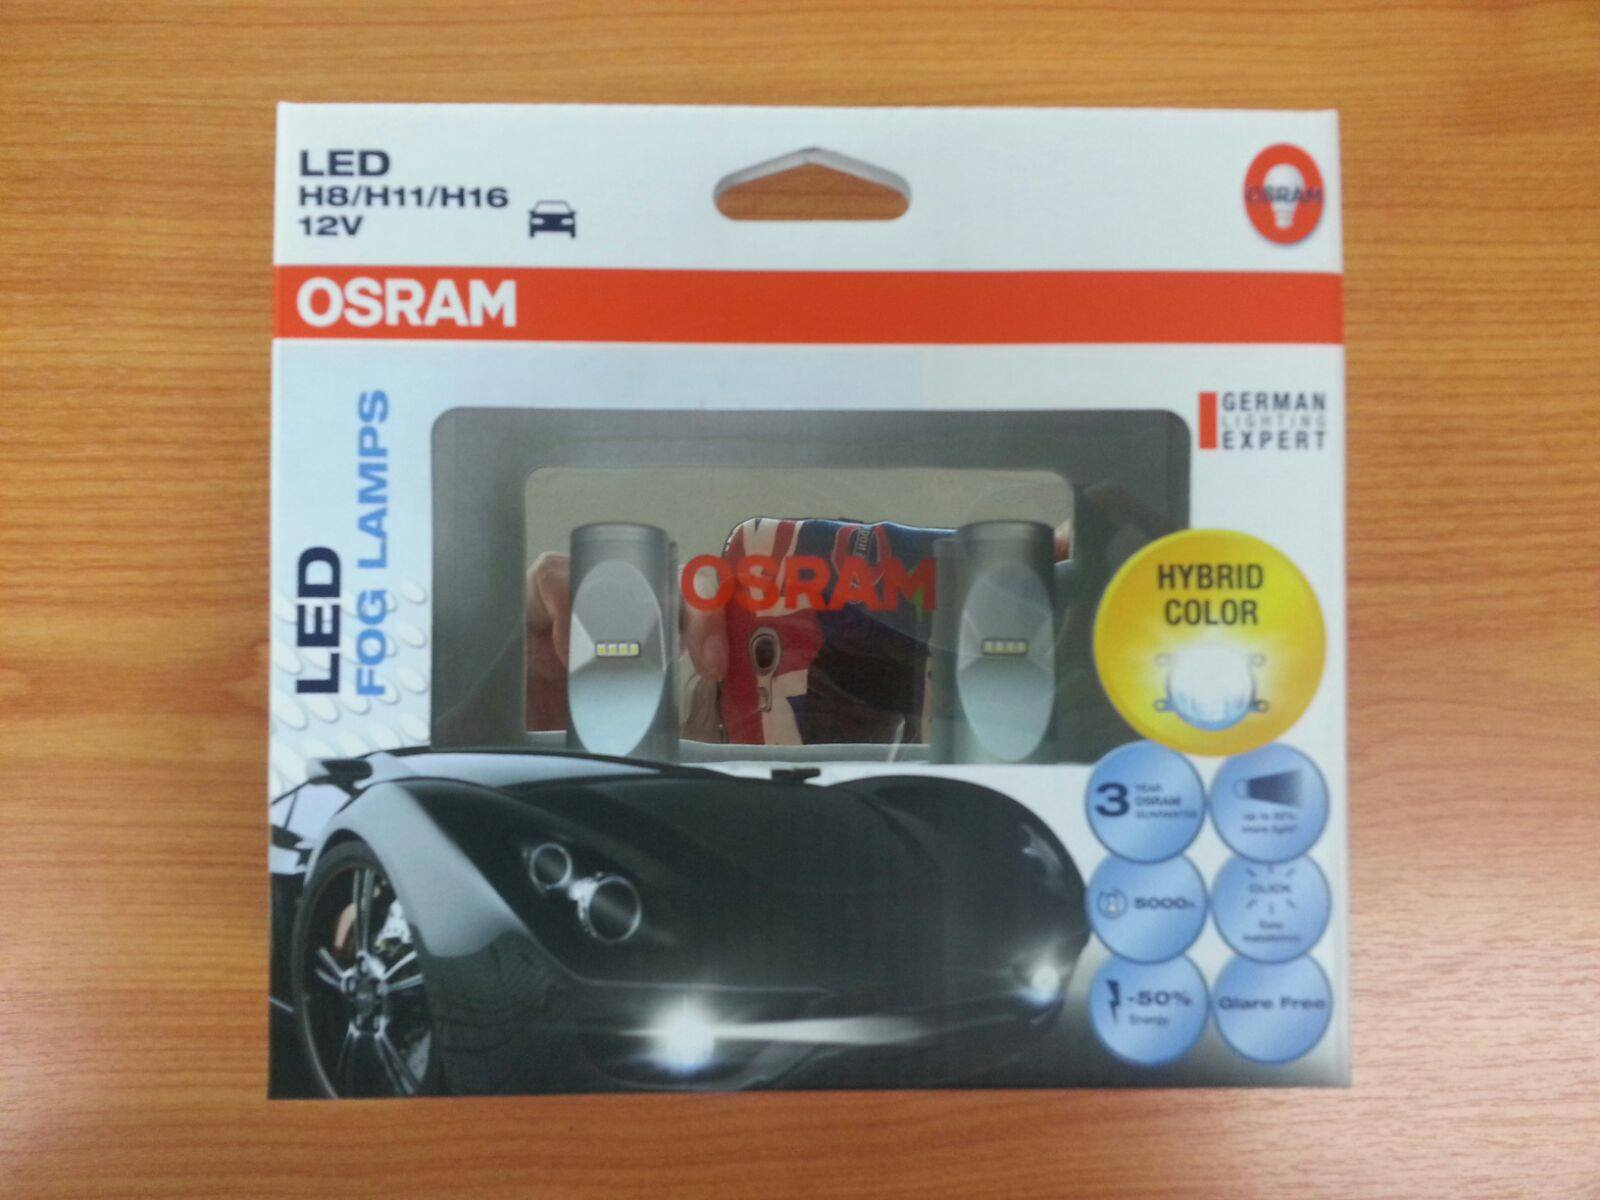 osram ledriving retrofit led fog lamp bulbs h8 h11 h16 cold white hybrid color 5000k 12v 10w. Black Bedroom Furniture Sets. Home Design Ideas